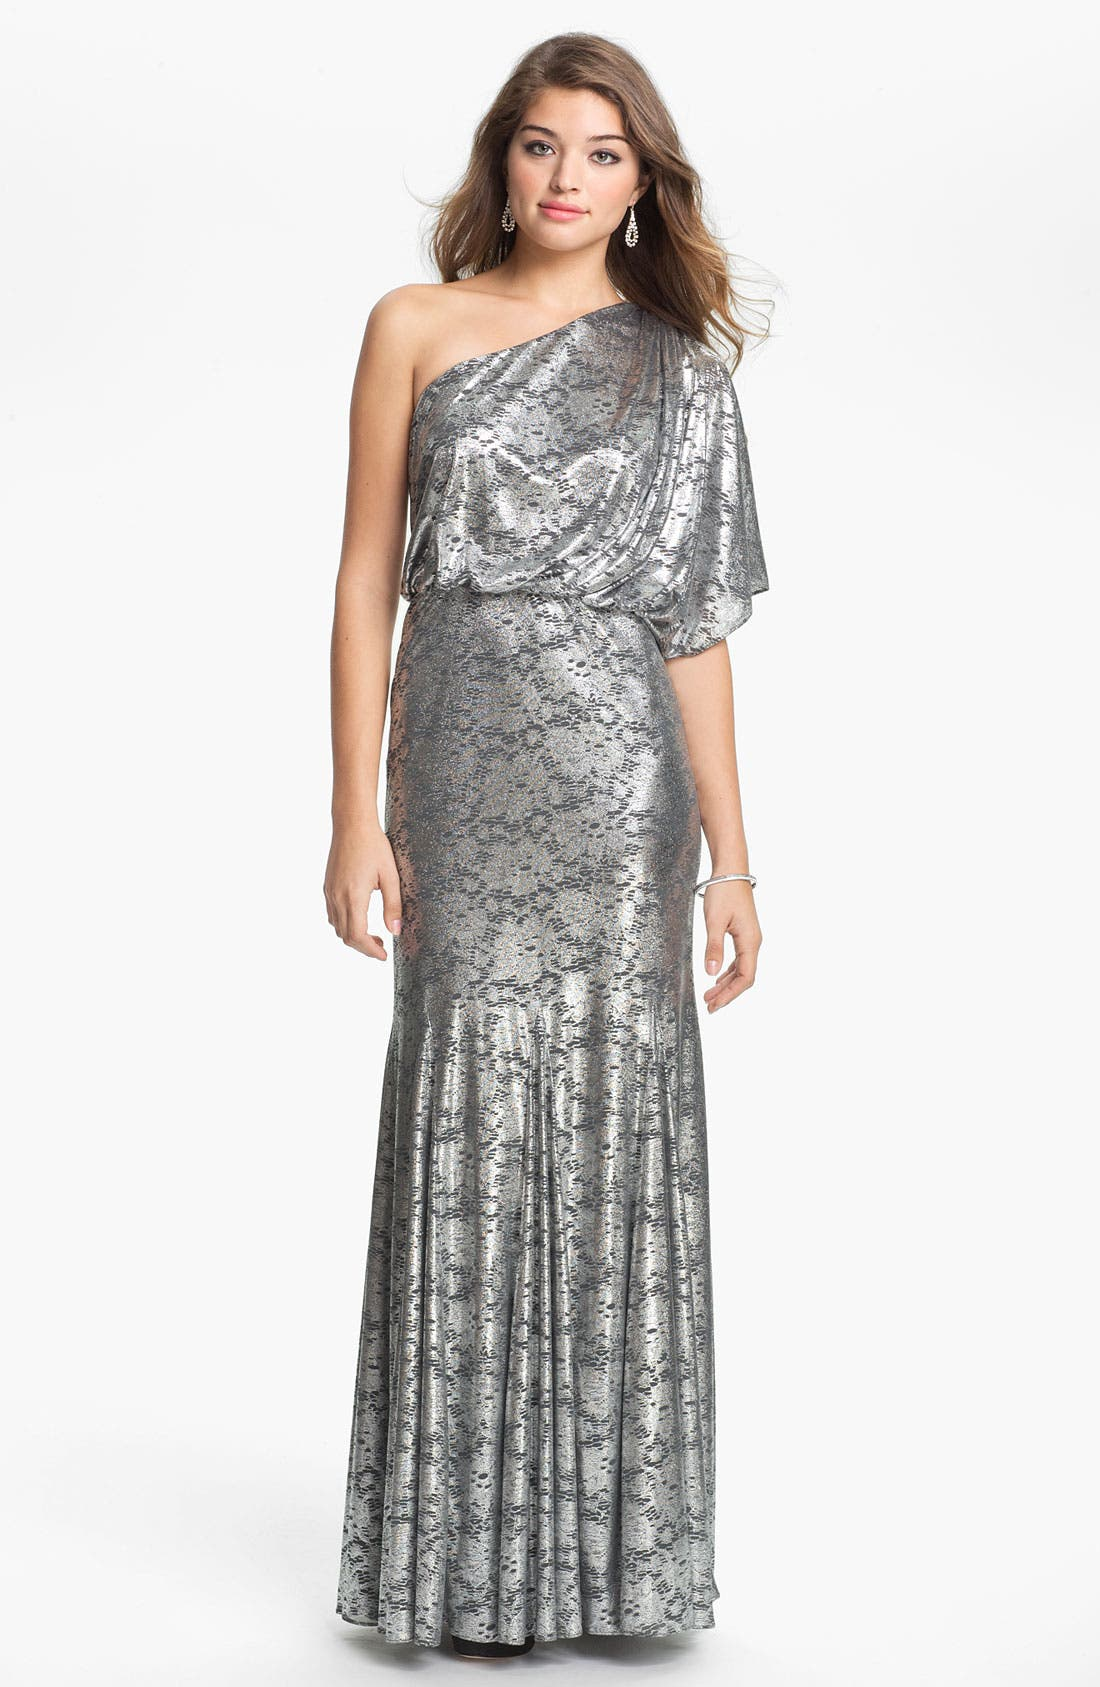 Main Image - Adrianna Papell One Shoulder Metallic Blouson Gown